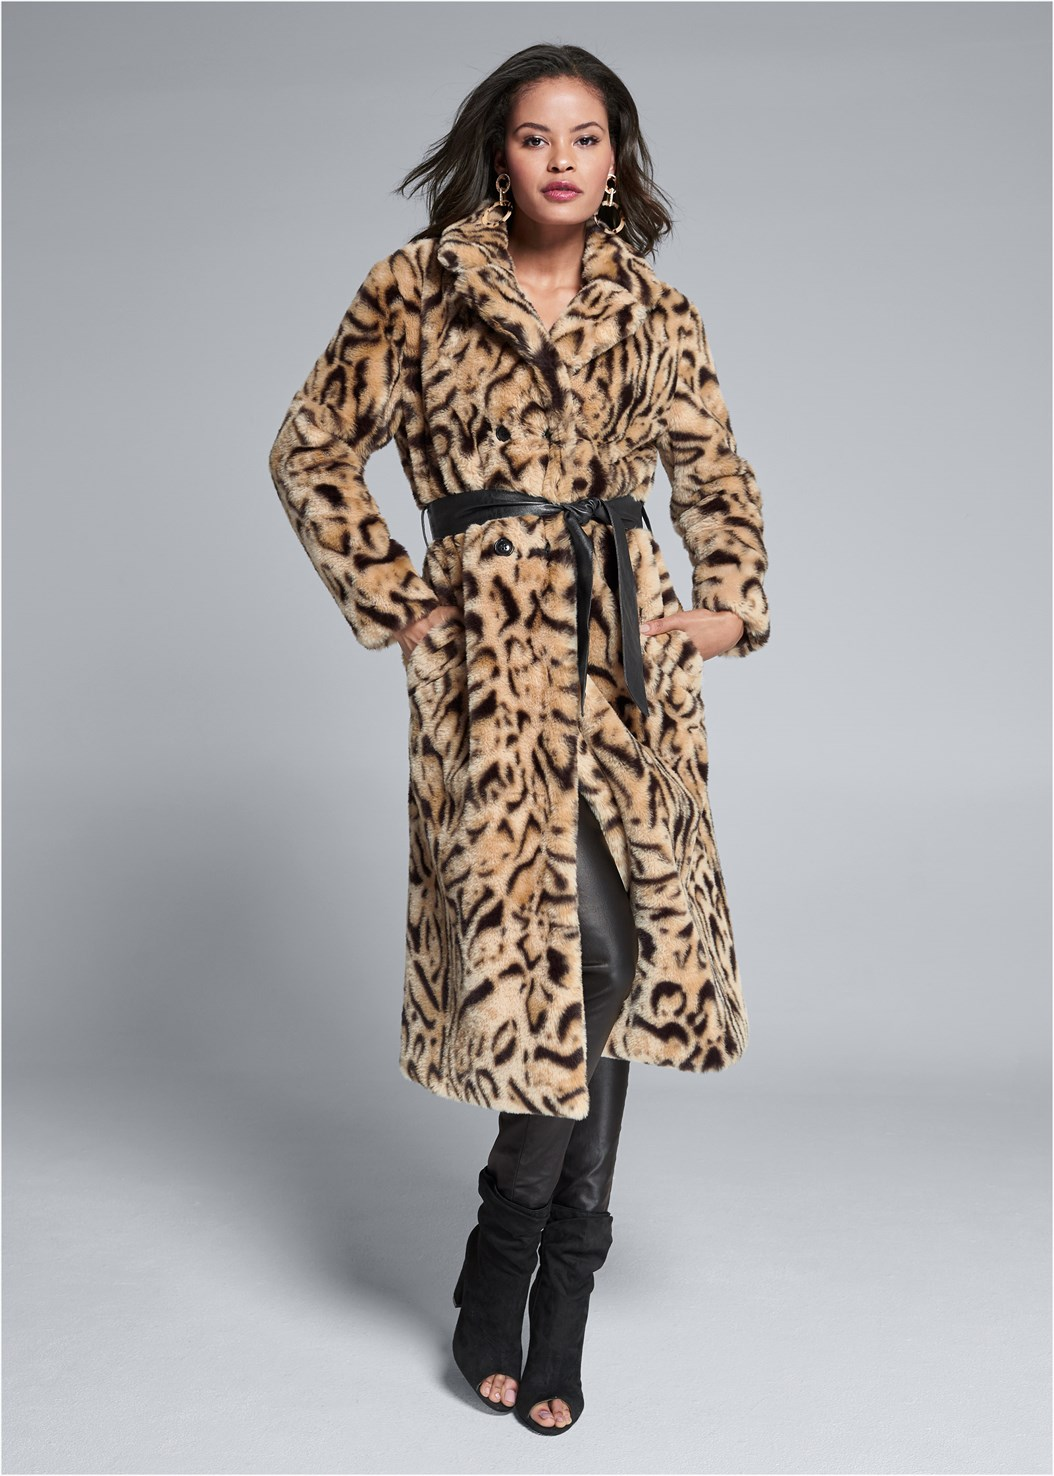 Animal Print Faux Fur Coat,Basic Cami Two Pack,Lace Cami,Faux Leather Pants,Strapless Bra With Geo Lace